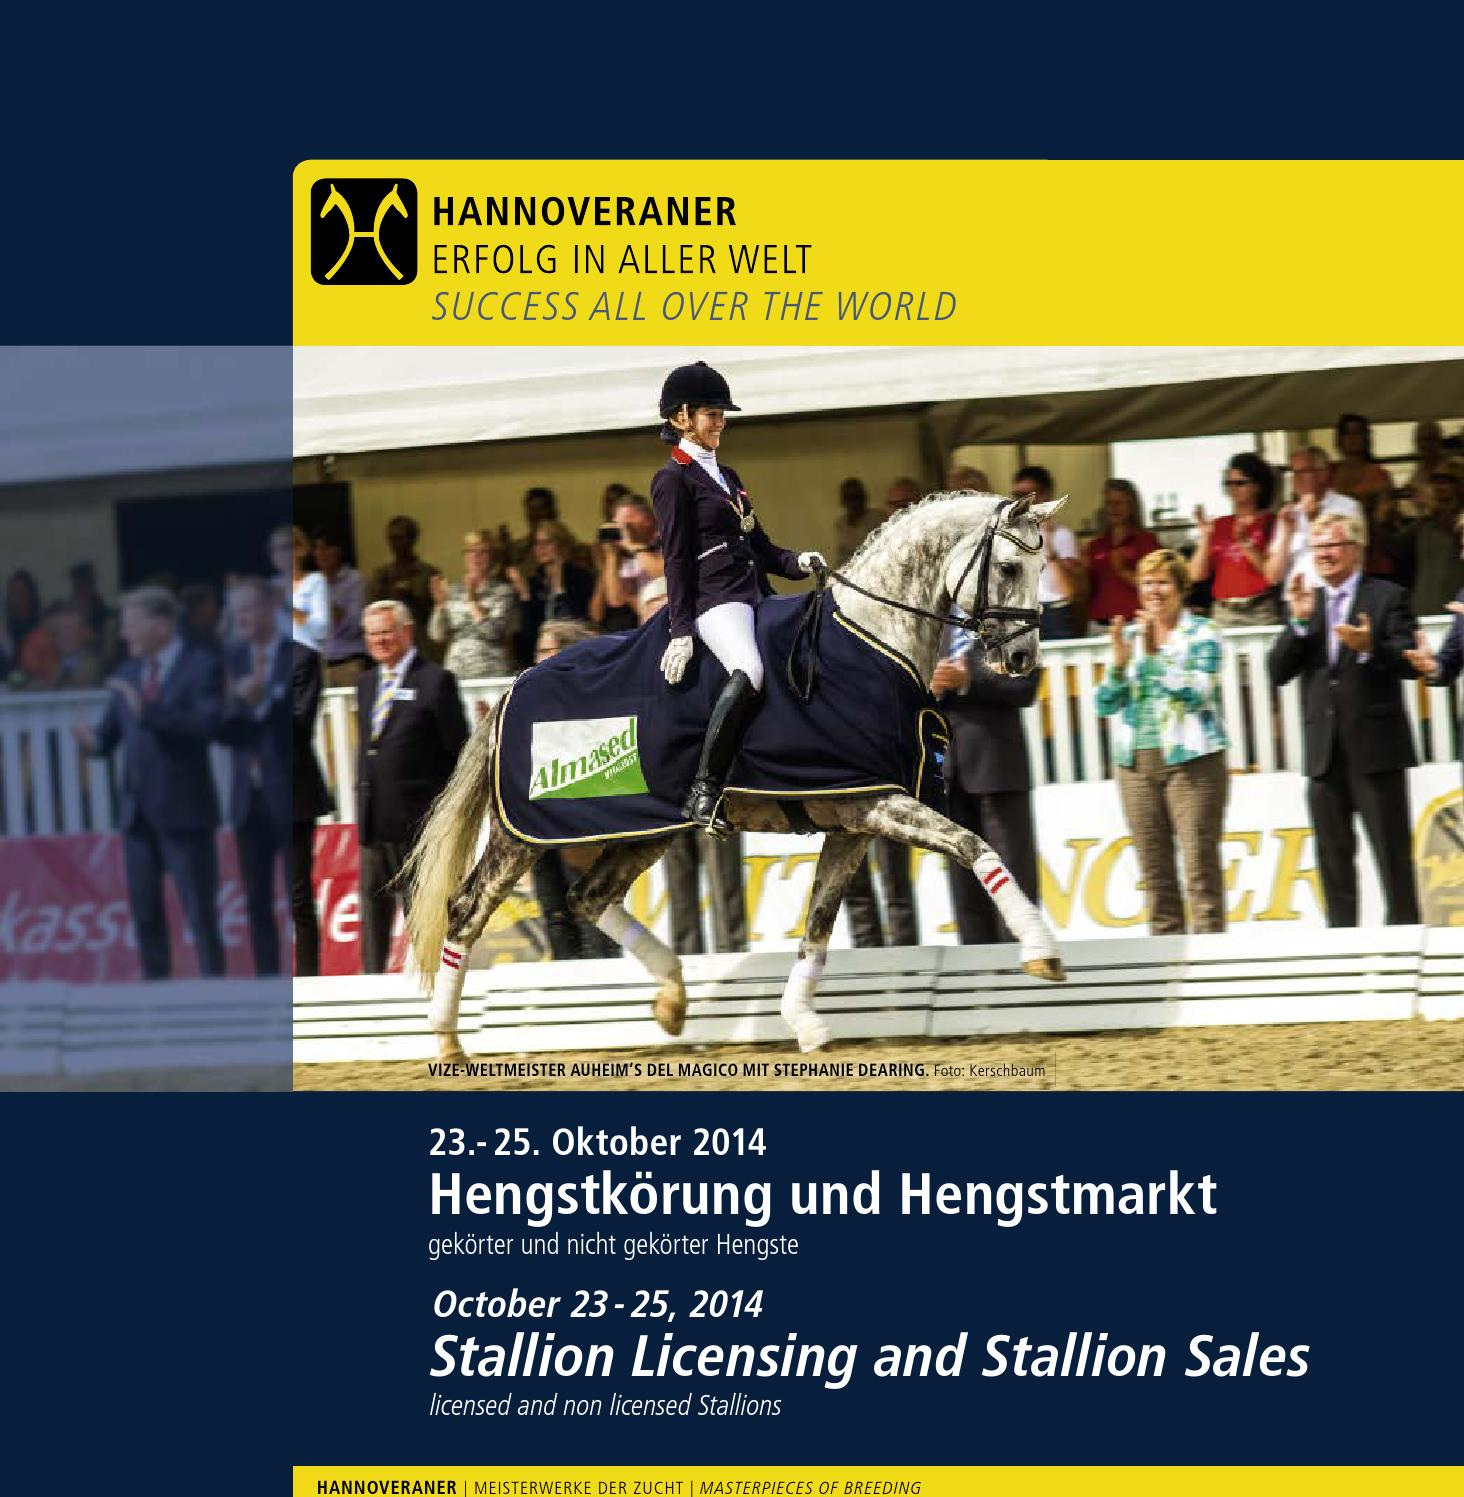 Hengstkörung und Hengstmarkt Hanoverian Stallion Licensing and